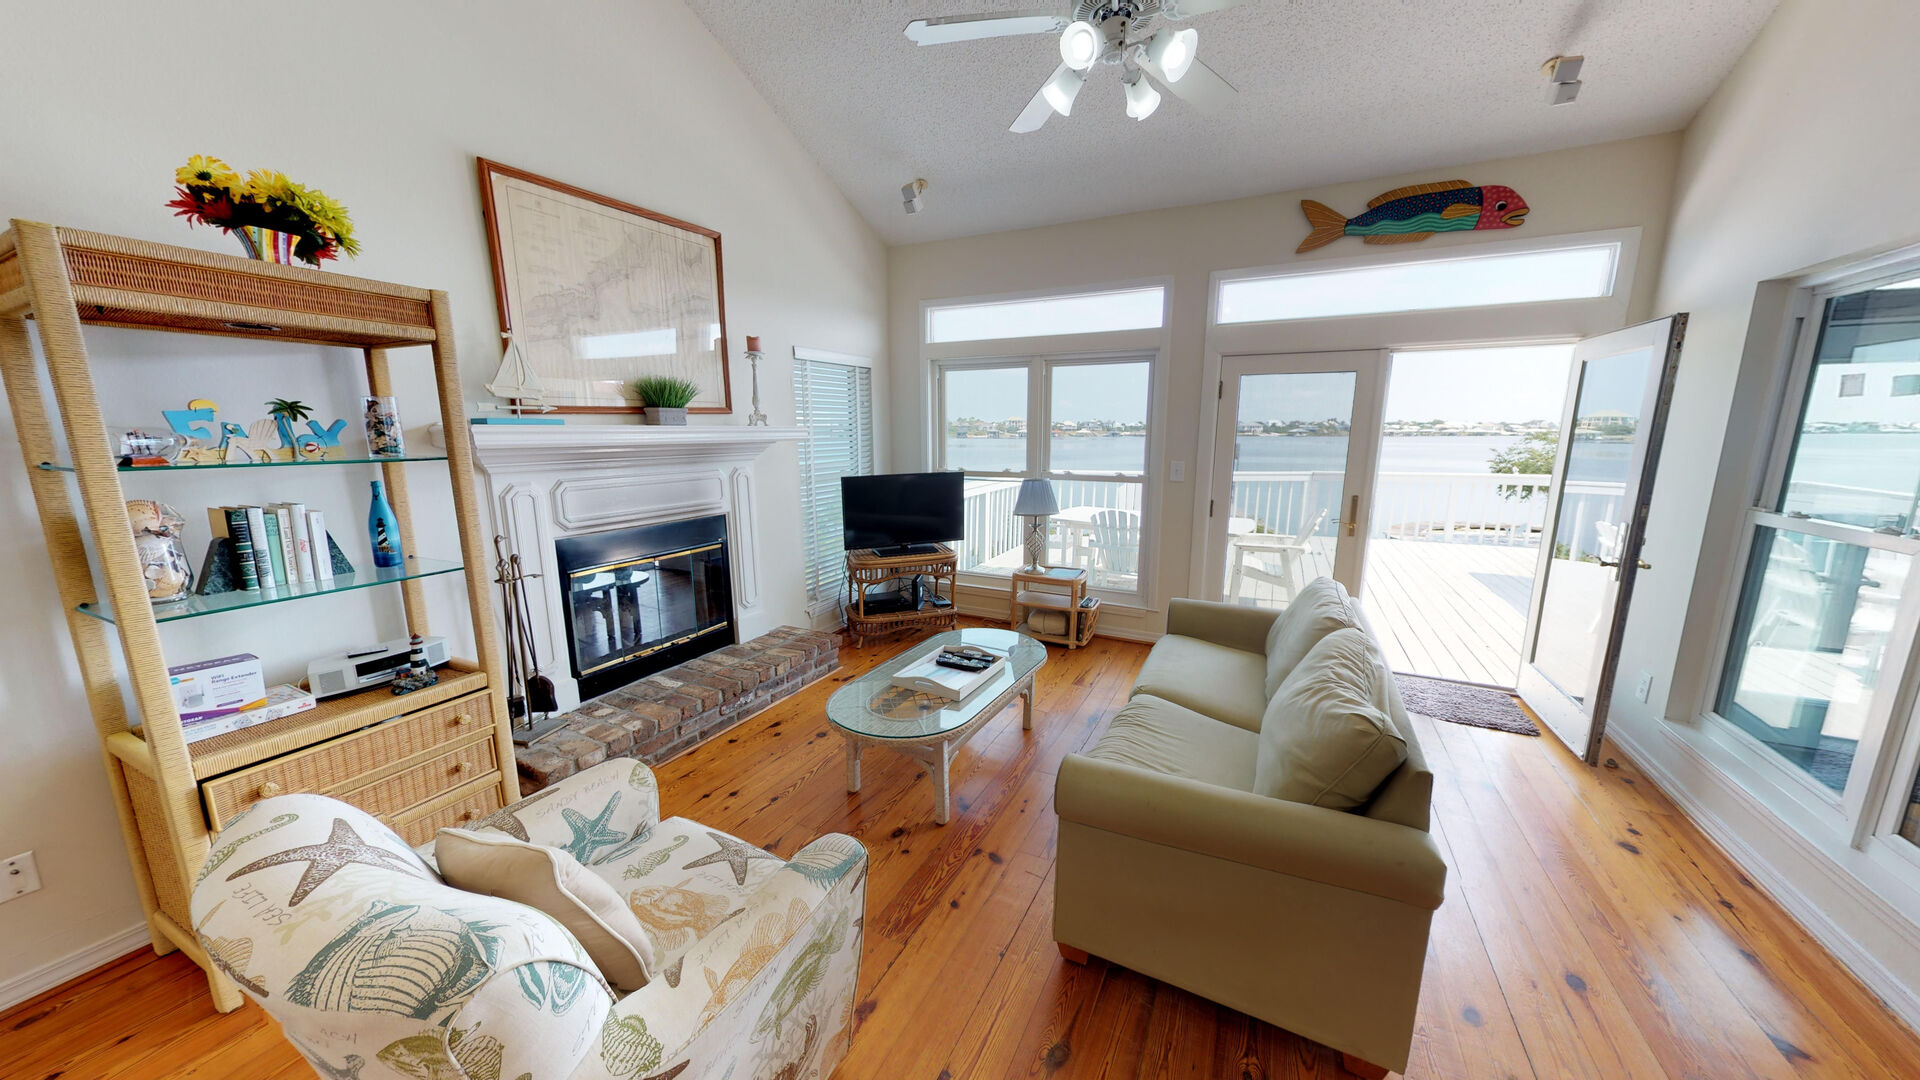 Enjoy the water views from the living area and kitchen!